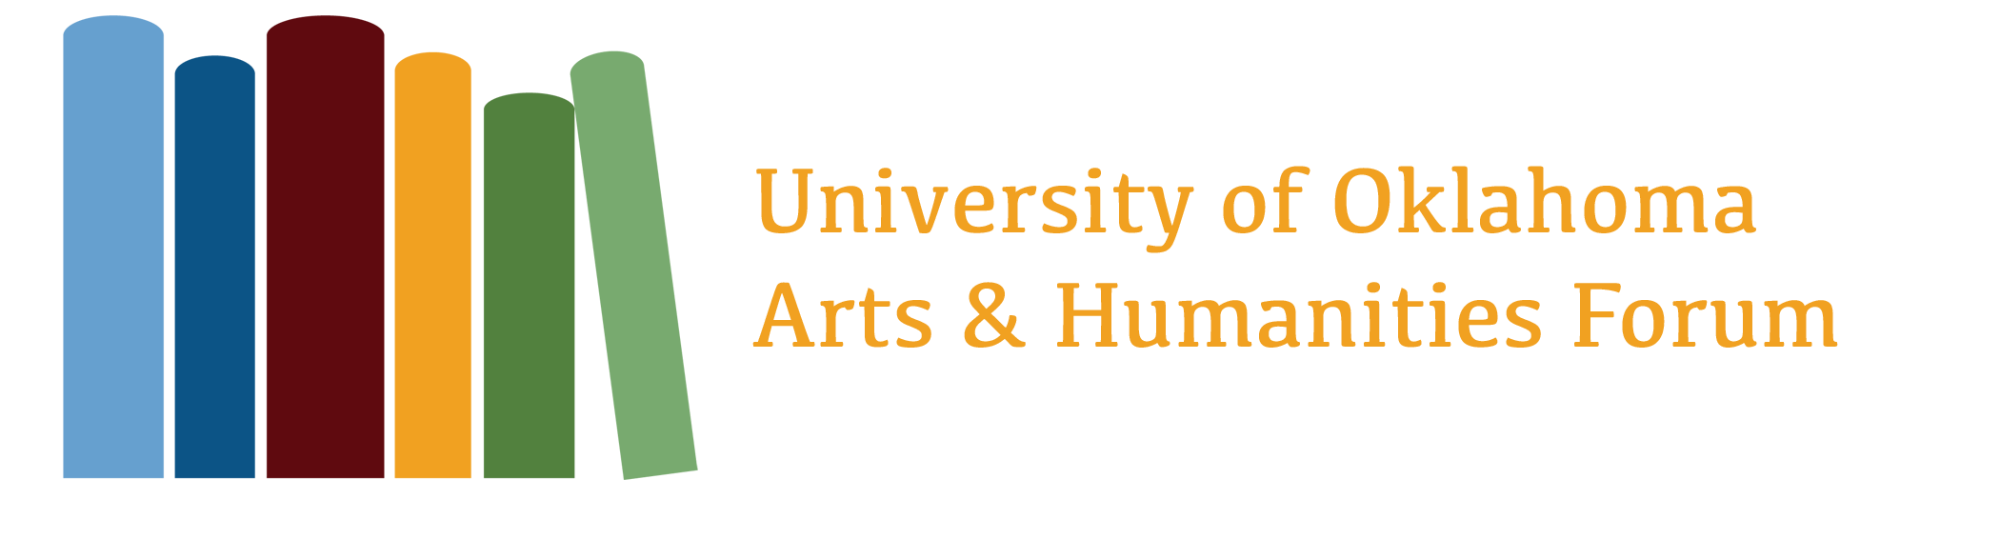 OU Humanities Forum logo